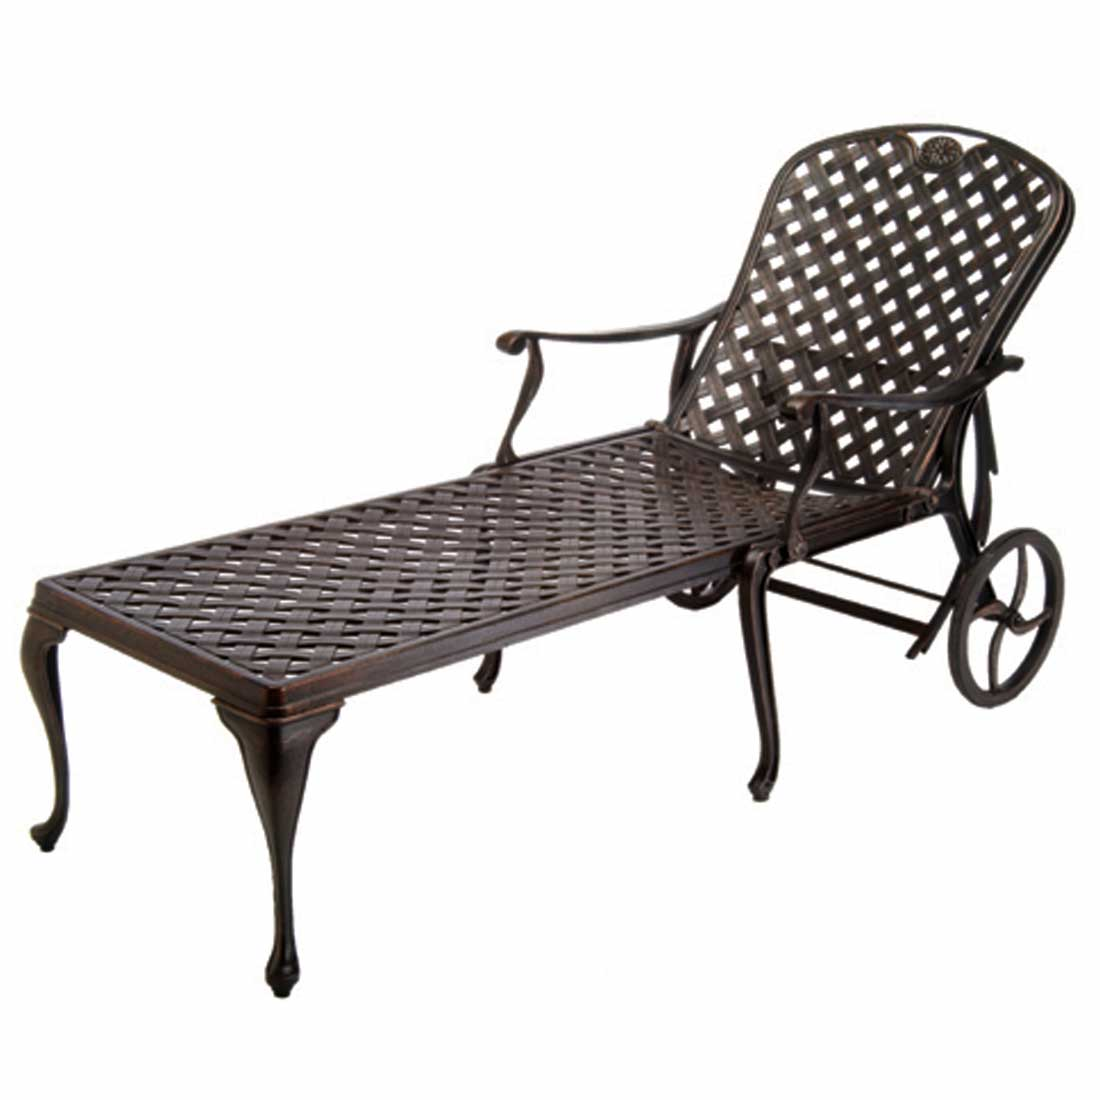 provance chaise lounge - Dimensions: W31 D78.38 H41.75